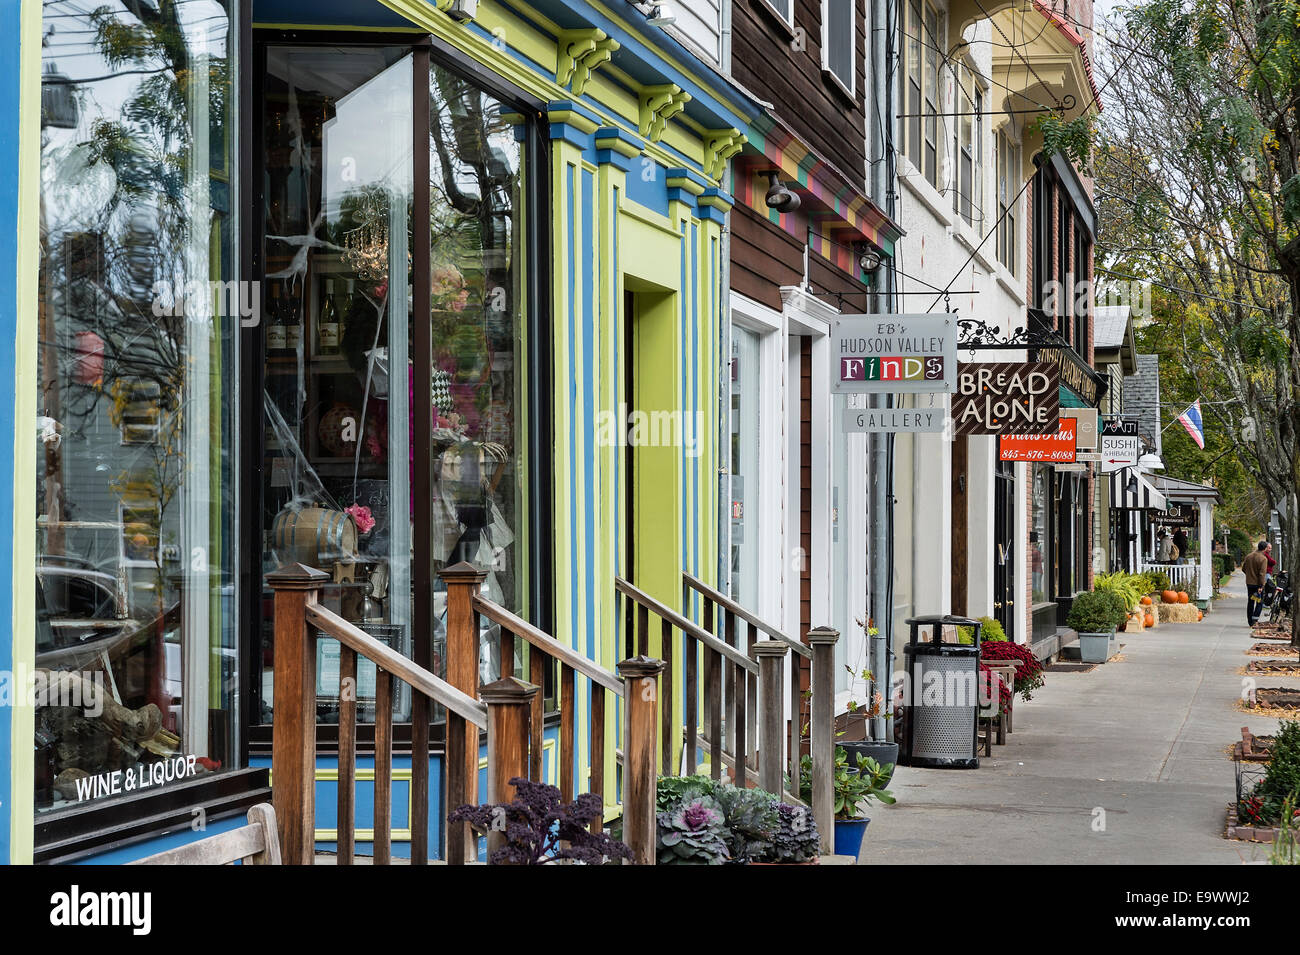 Shops in village of Rhinebeck, New York, USA Stock Photo